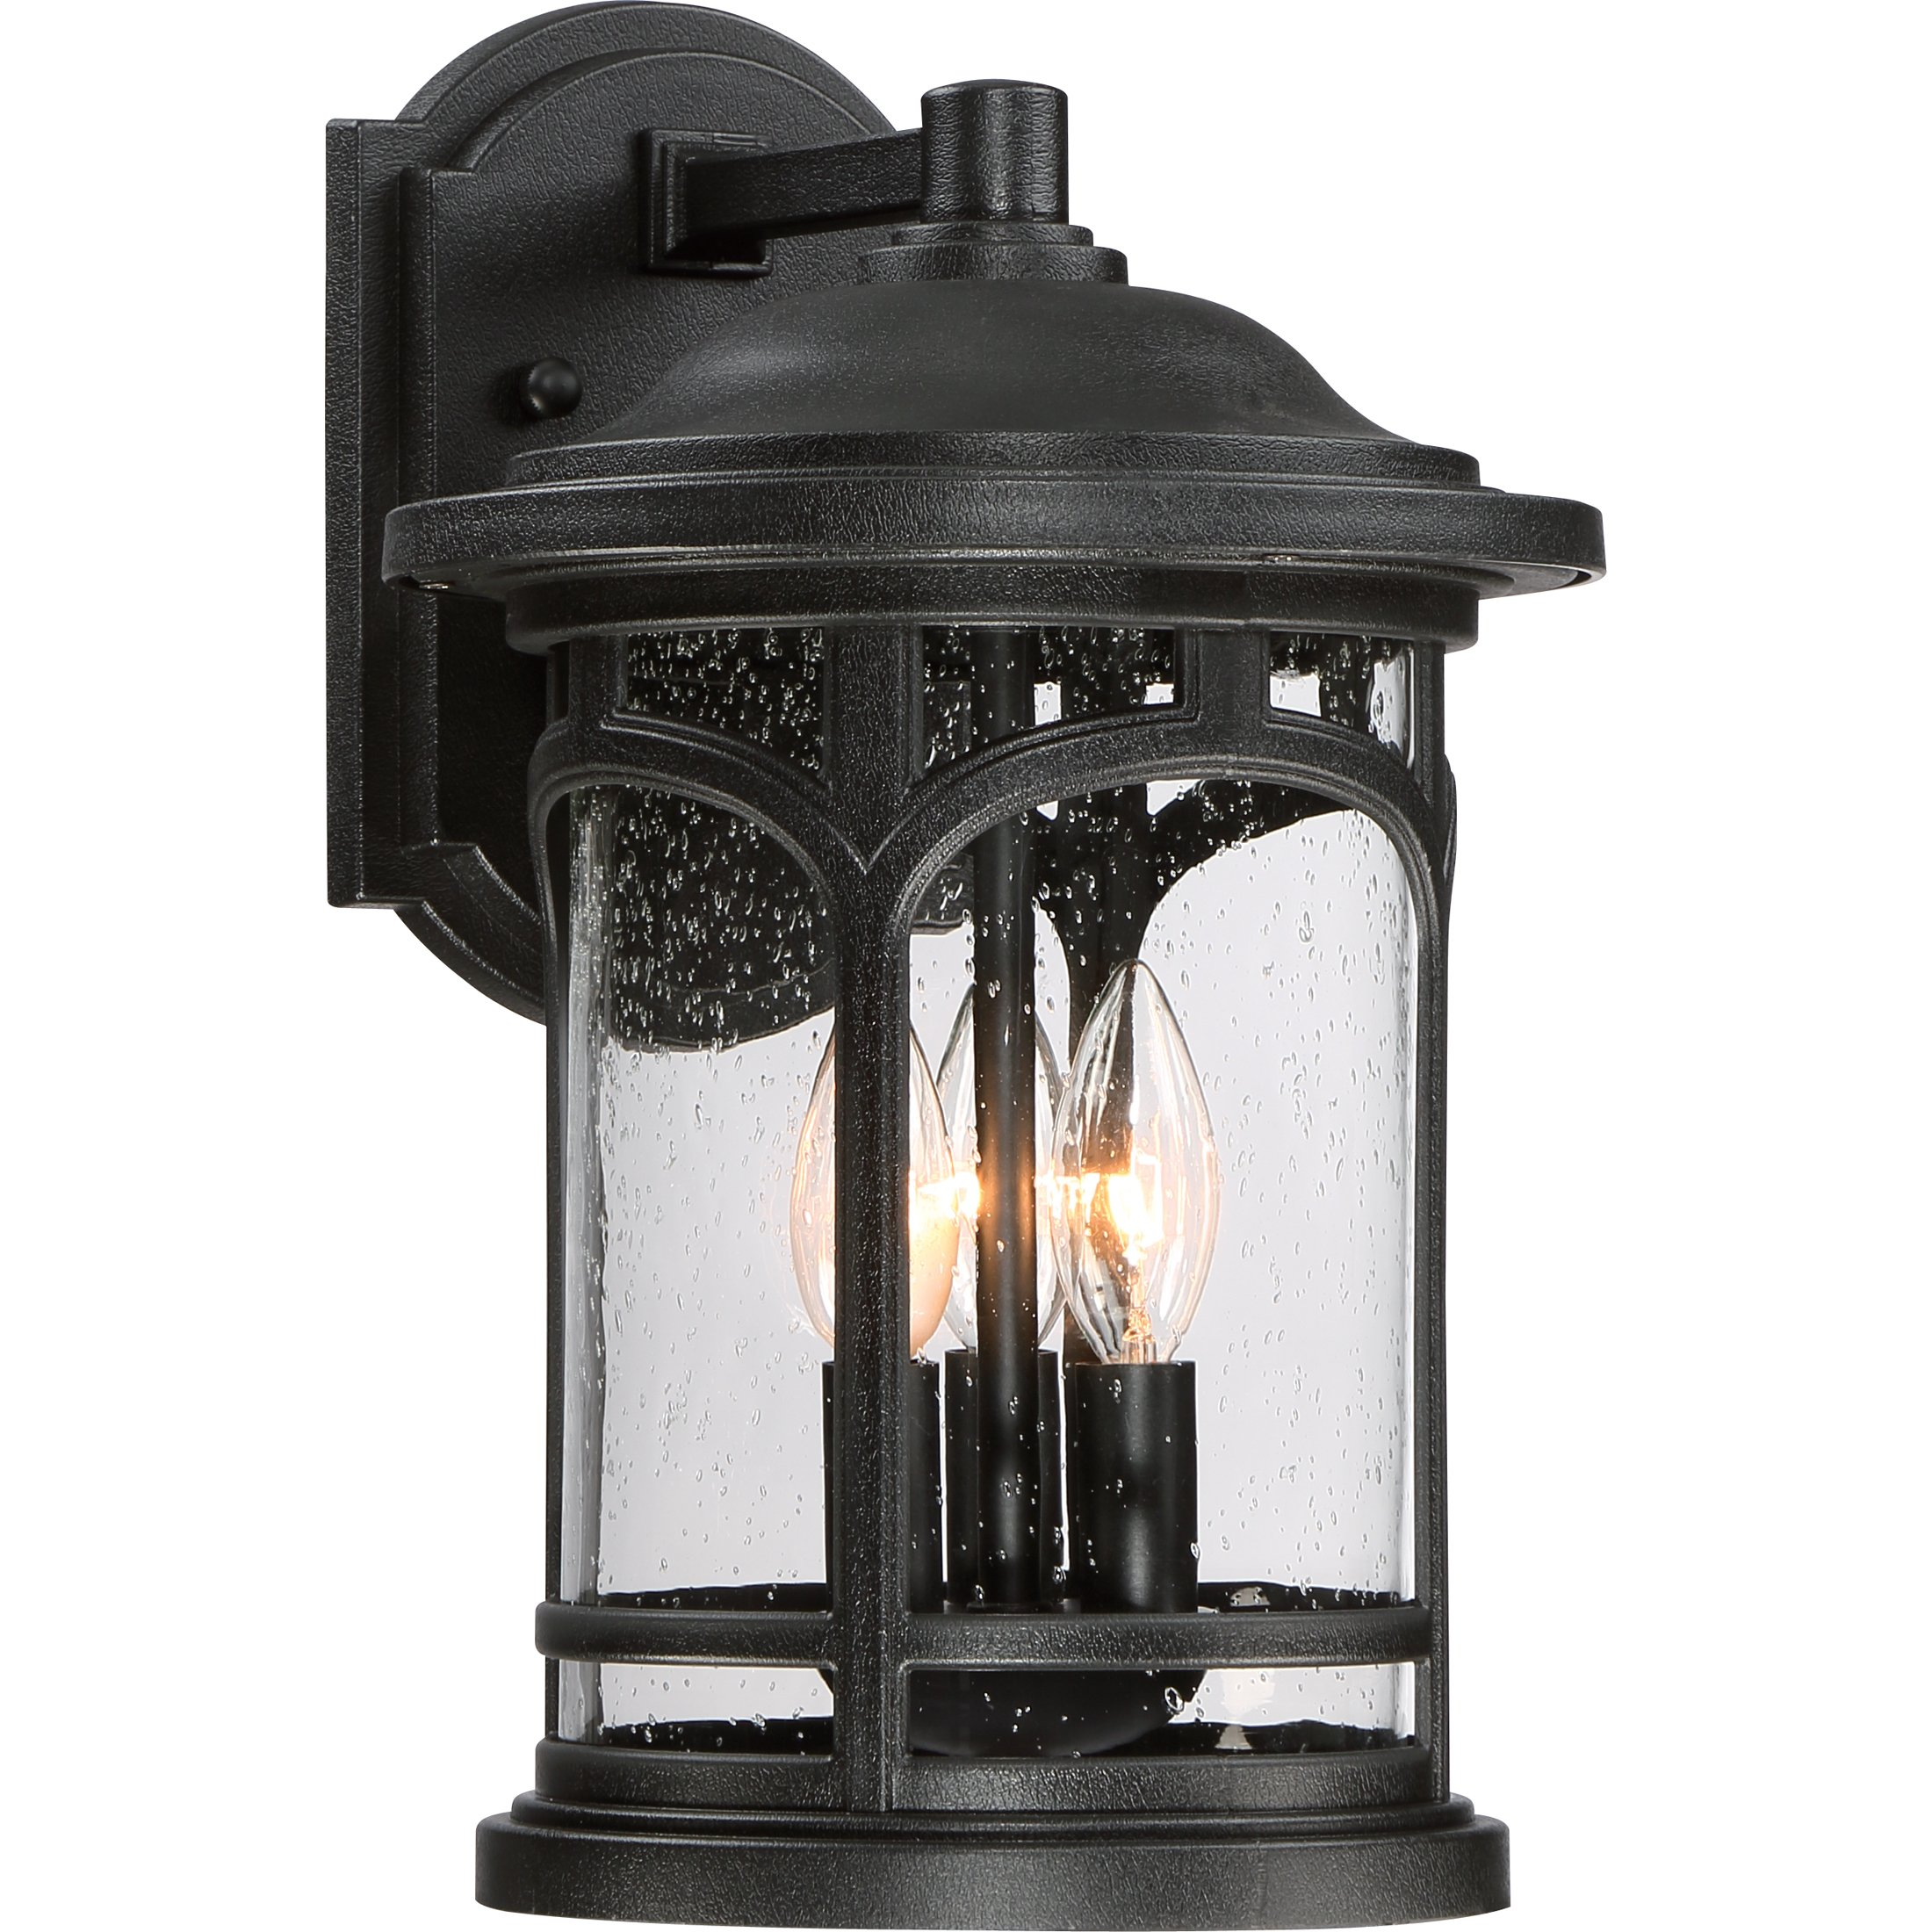 Quoizel MBH8409K  Marblehead 3-Light Outdoor Lantern, Mystic Black by Quoizel